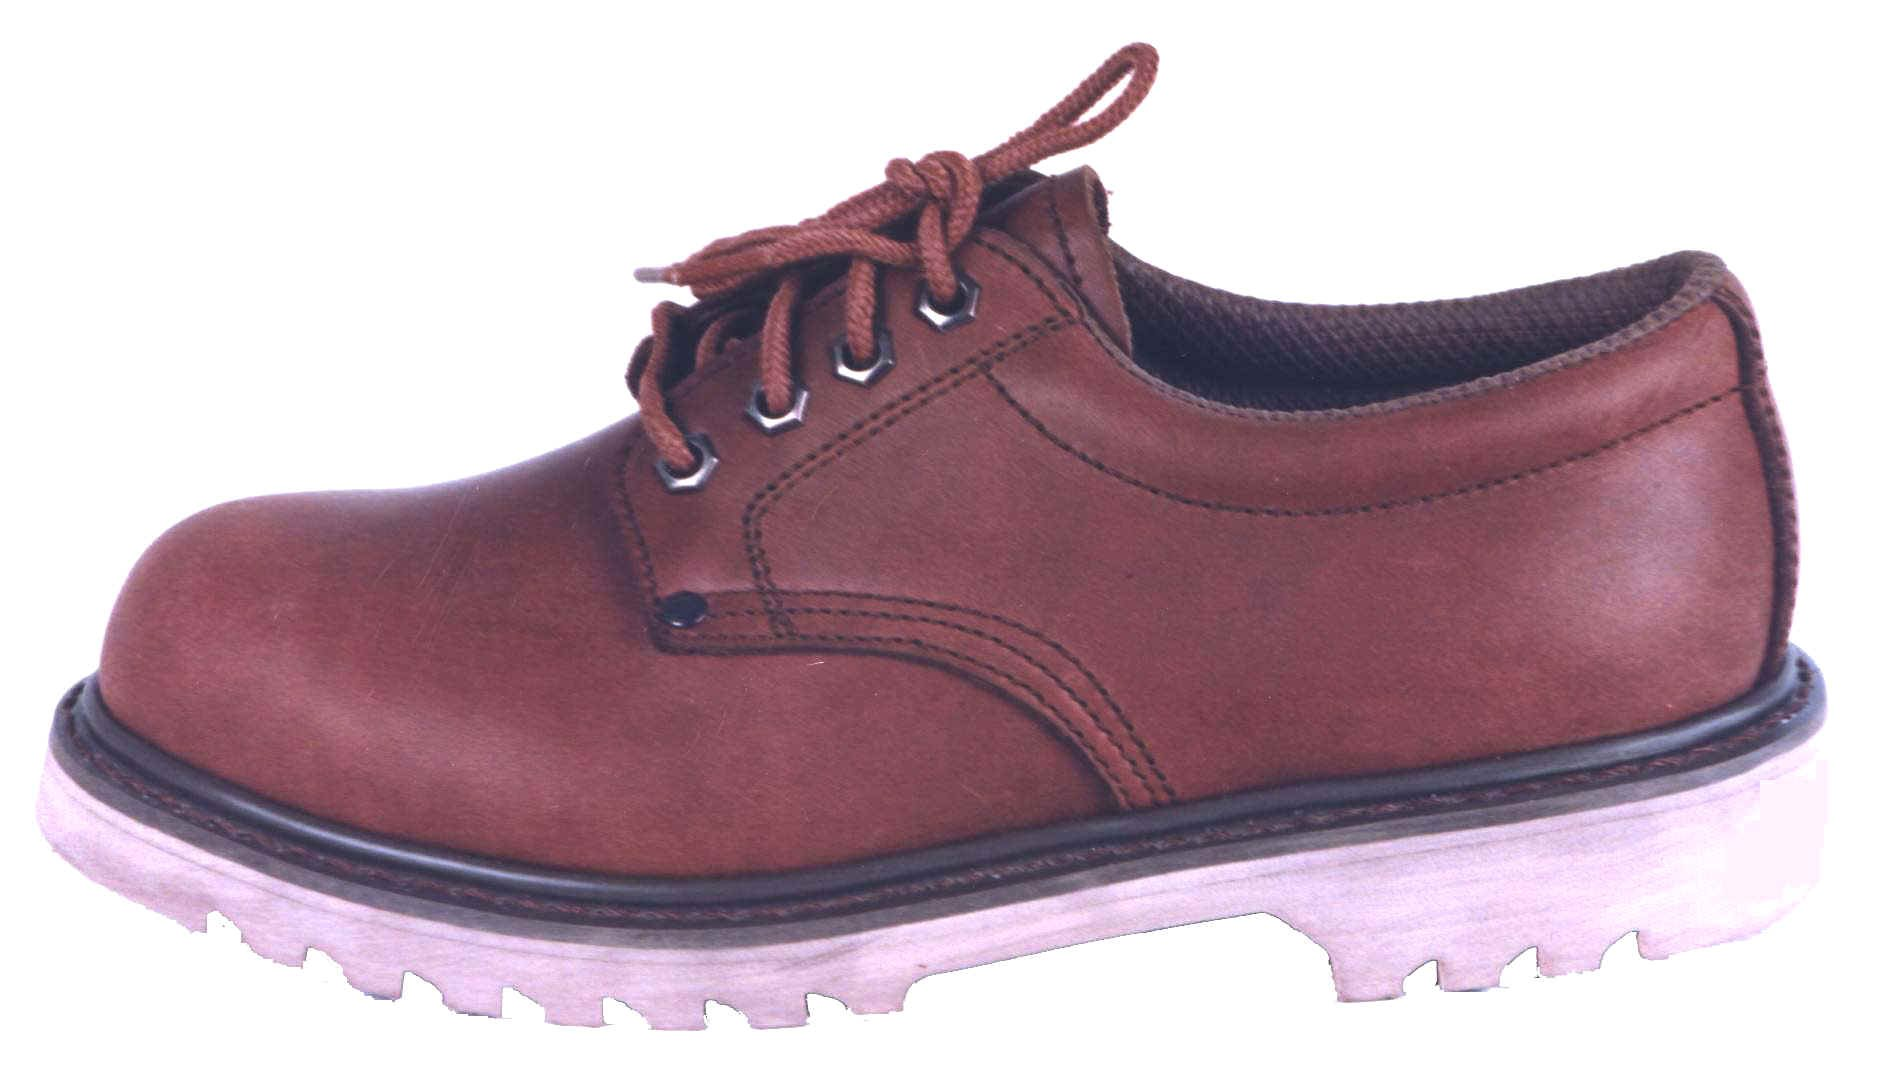 Supply safety shoes leather work shoes